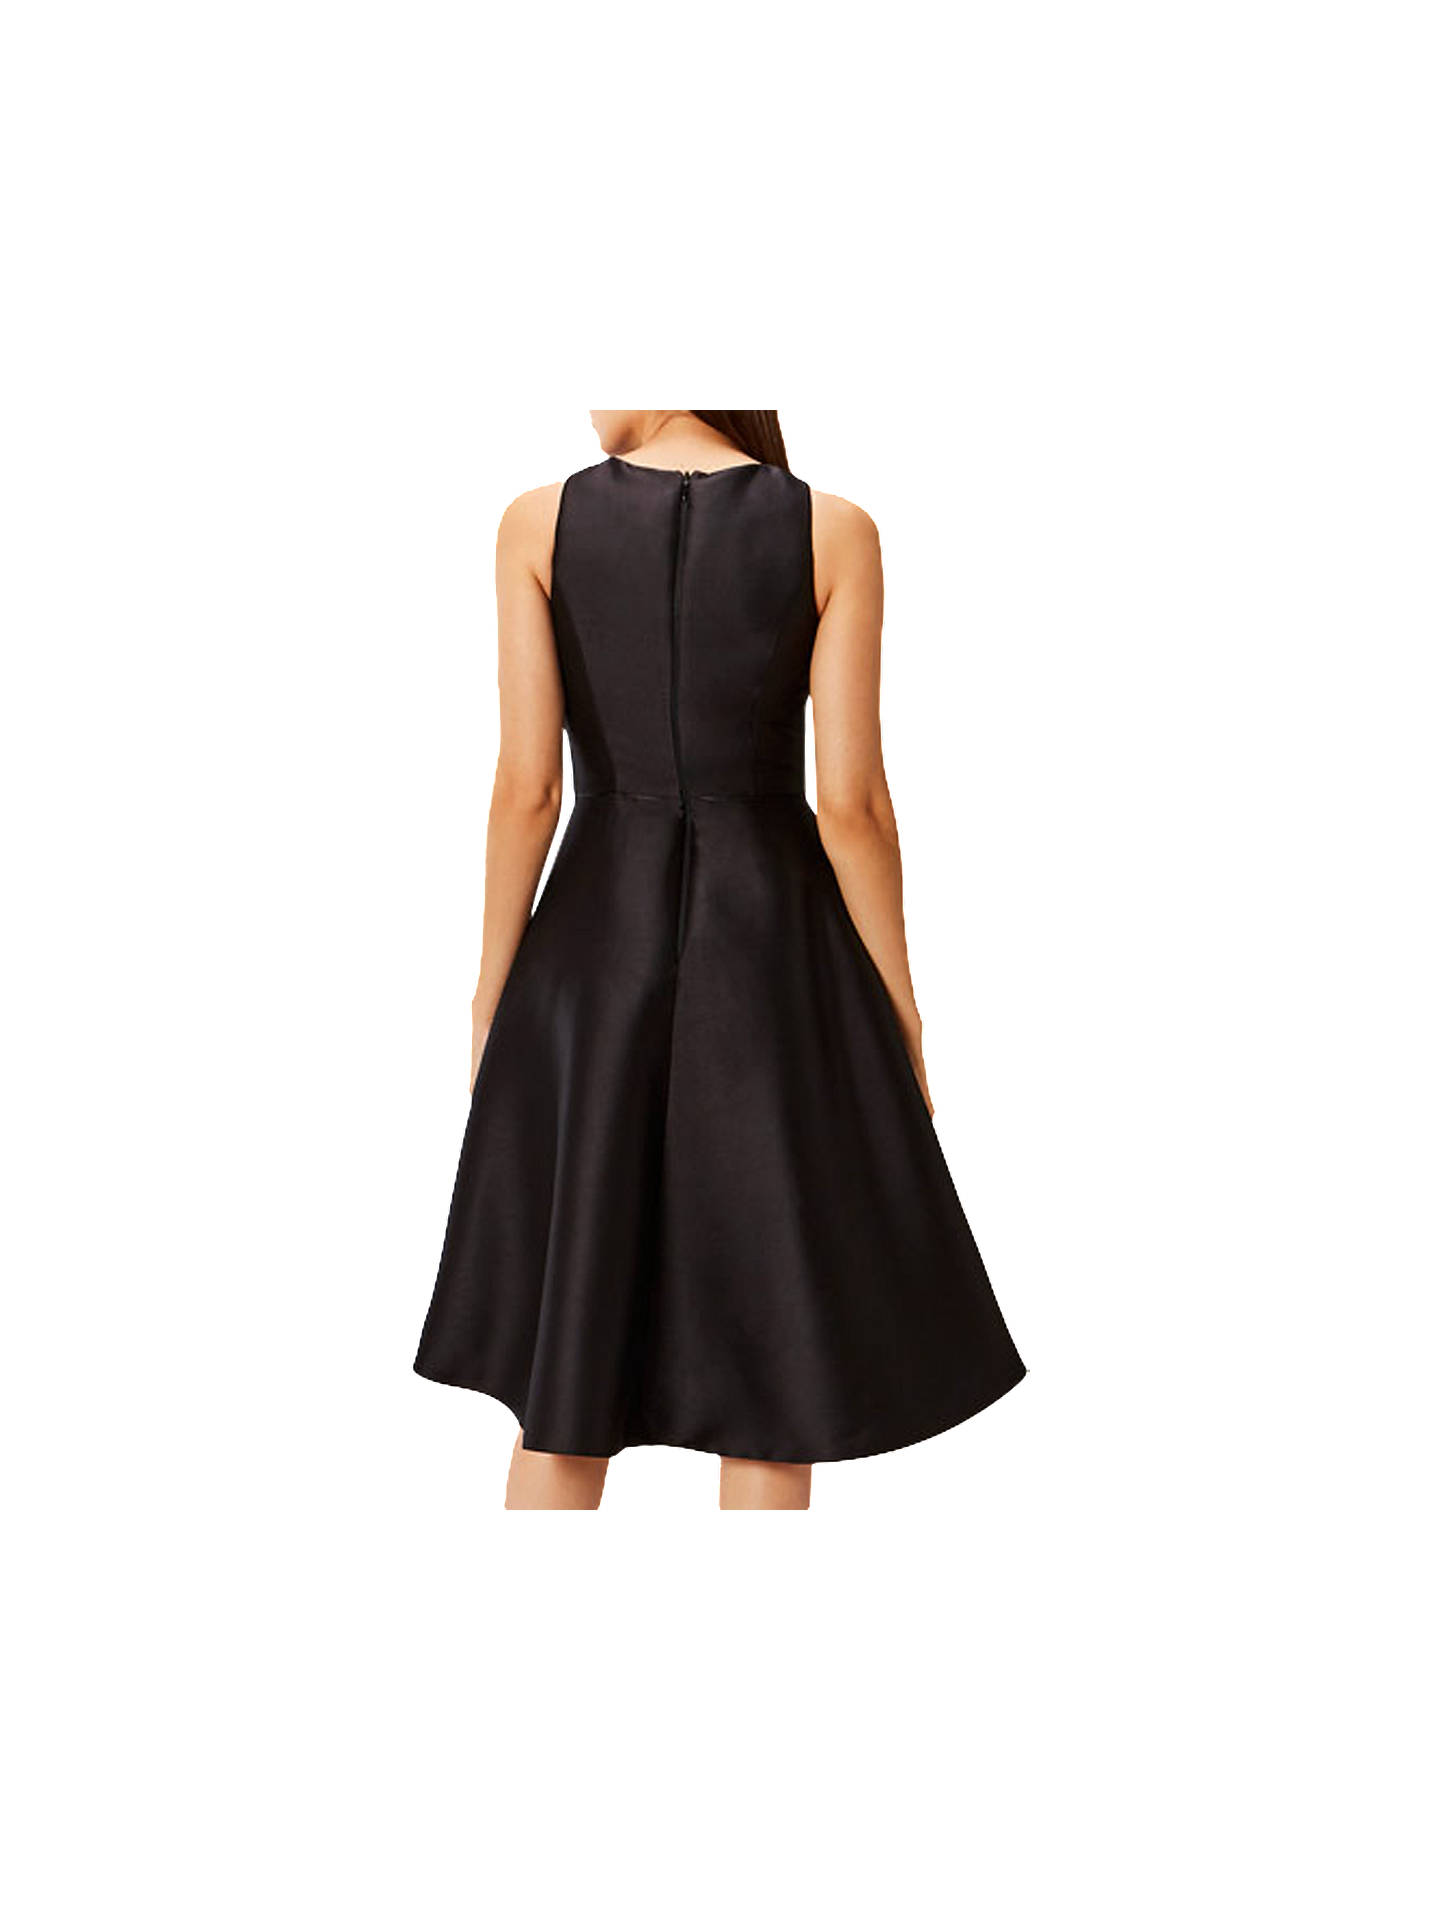 BuyCoast Adellea Ruffle Midi Dress, Black, 6 Online at johnlewis.com